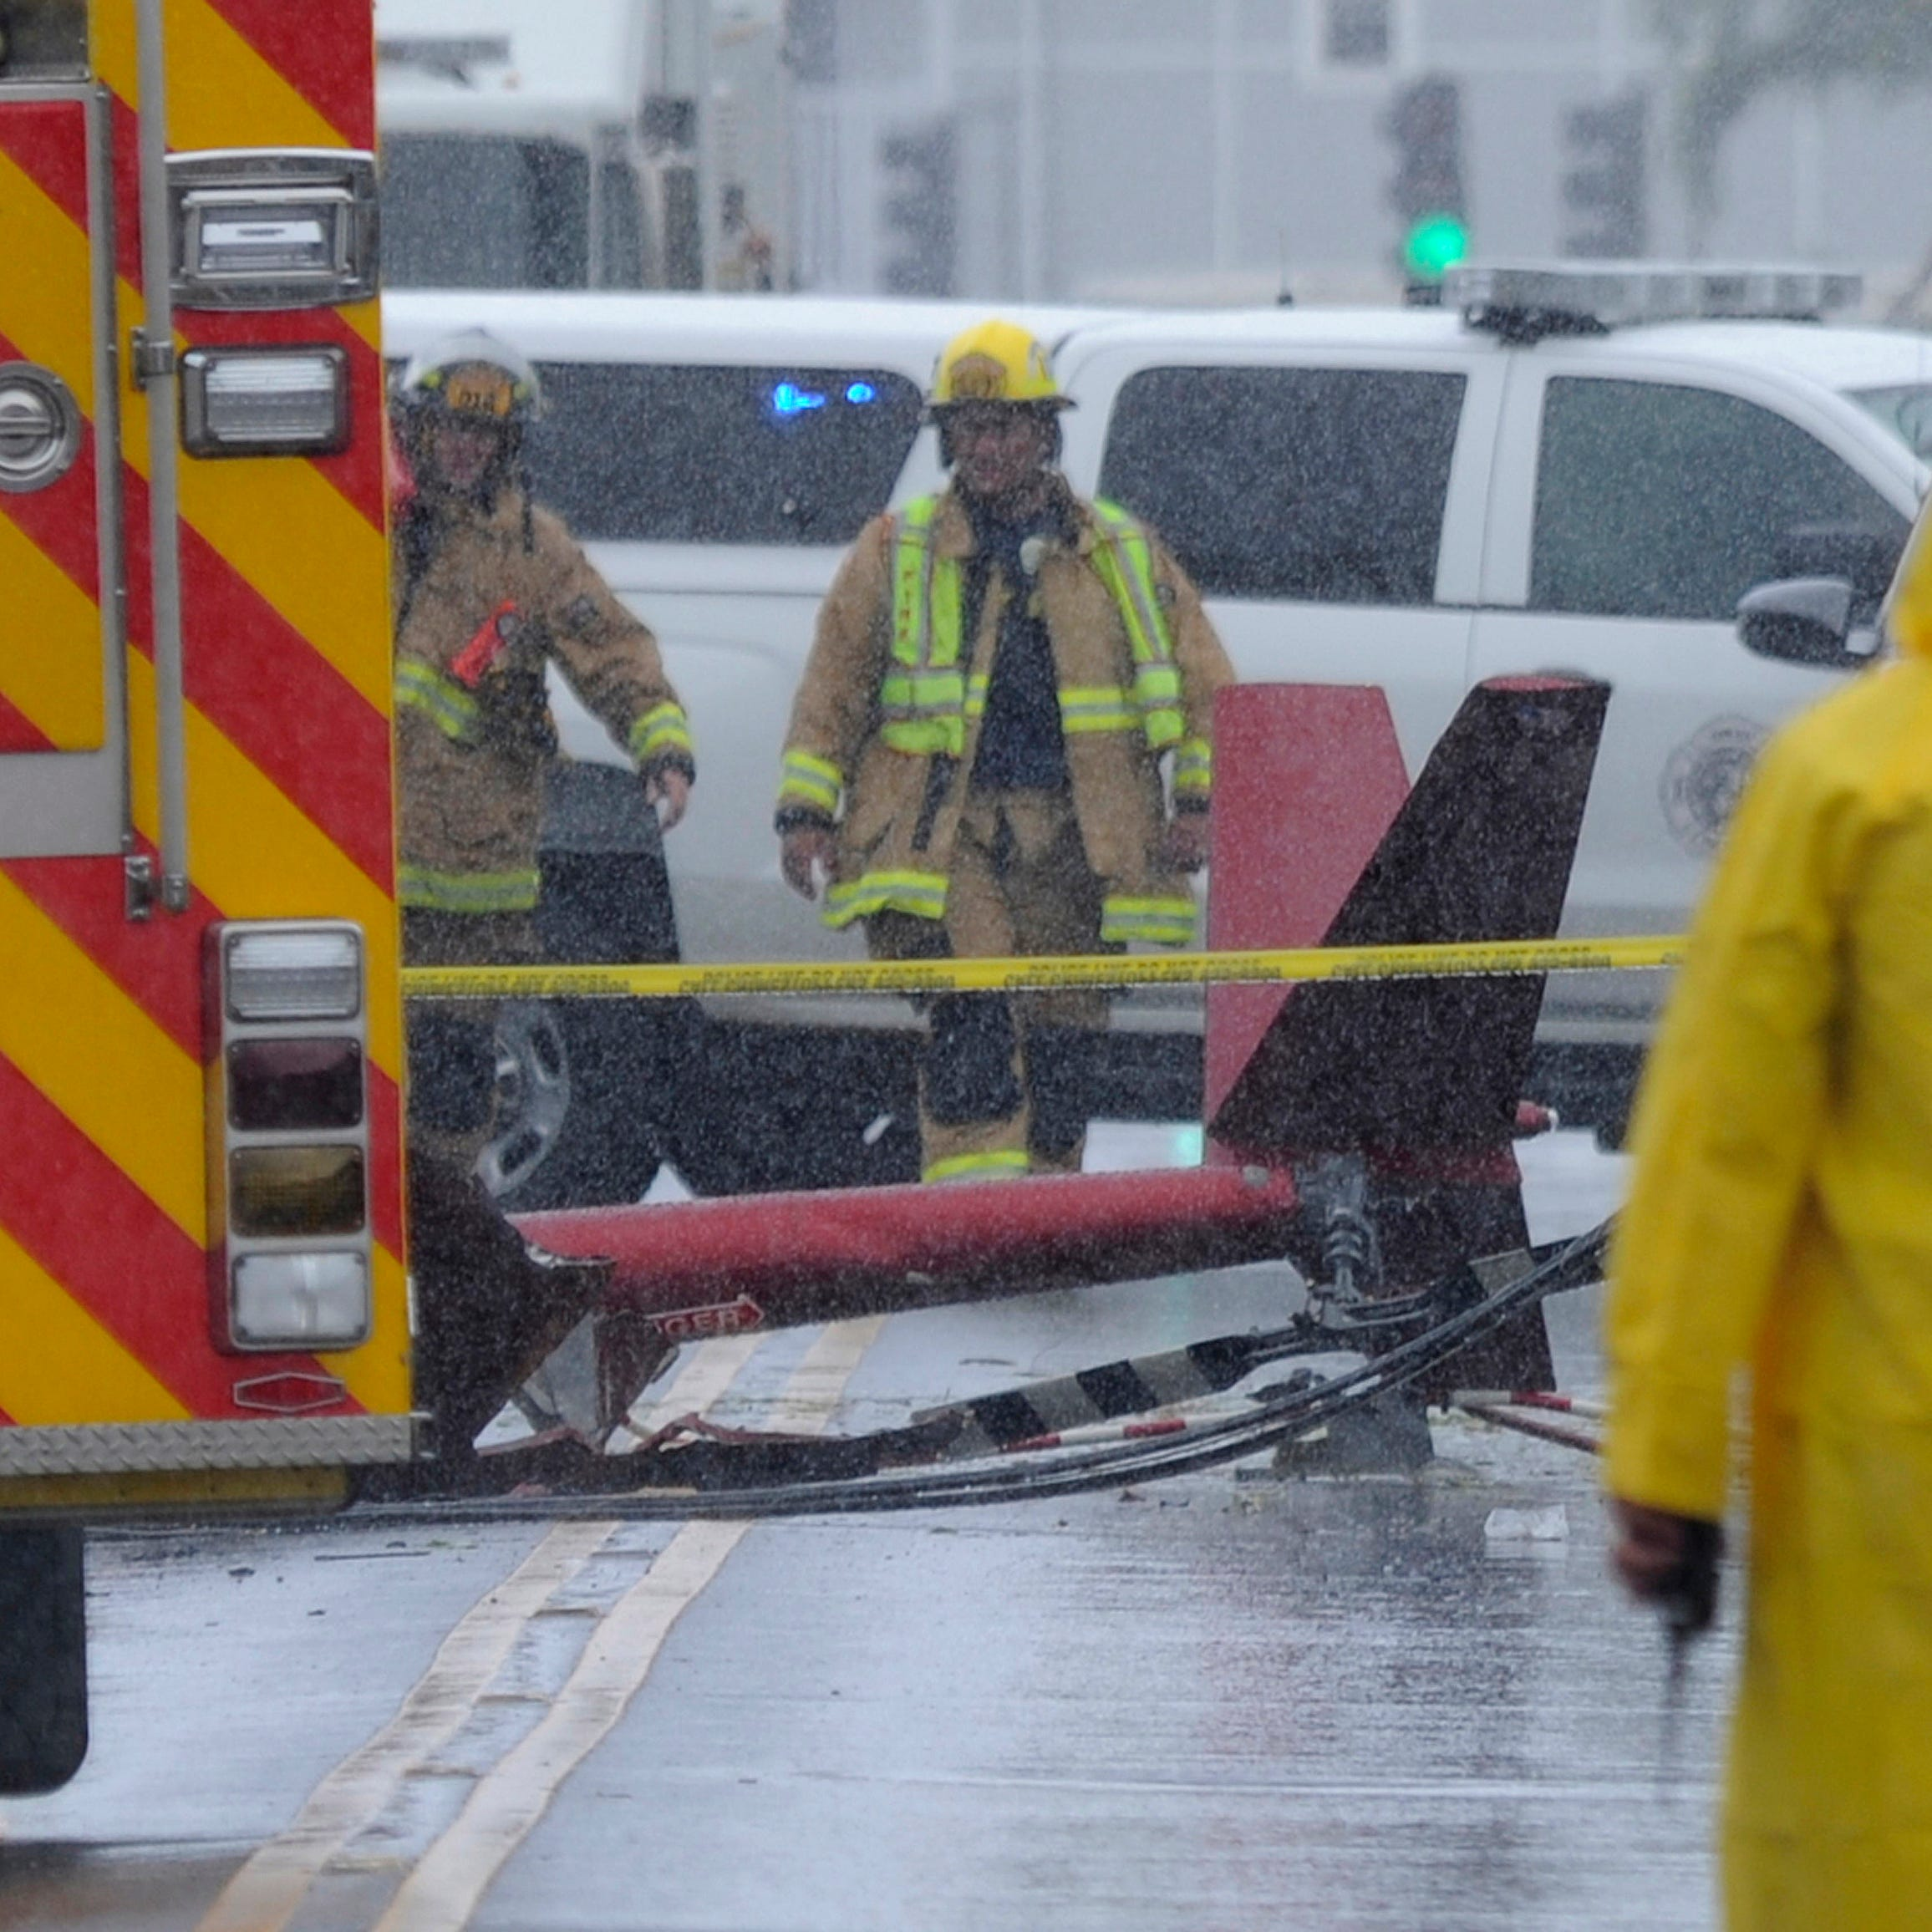 'It sounded like a missile hit a plane': Hawaii tour helicopter crashes near Honolulu, killing 3